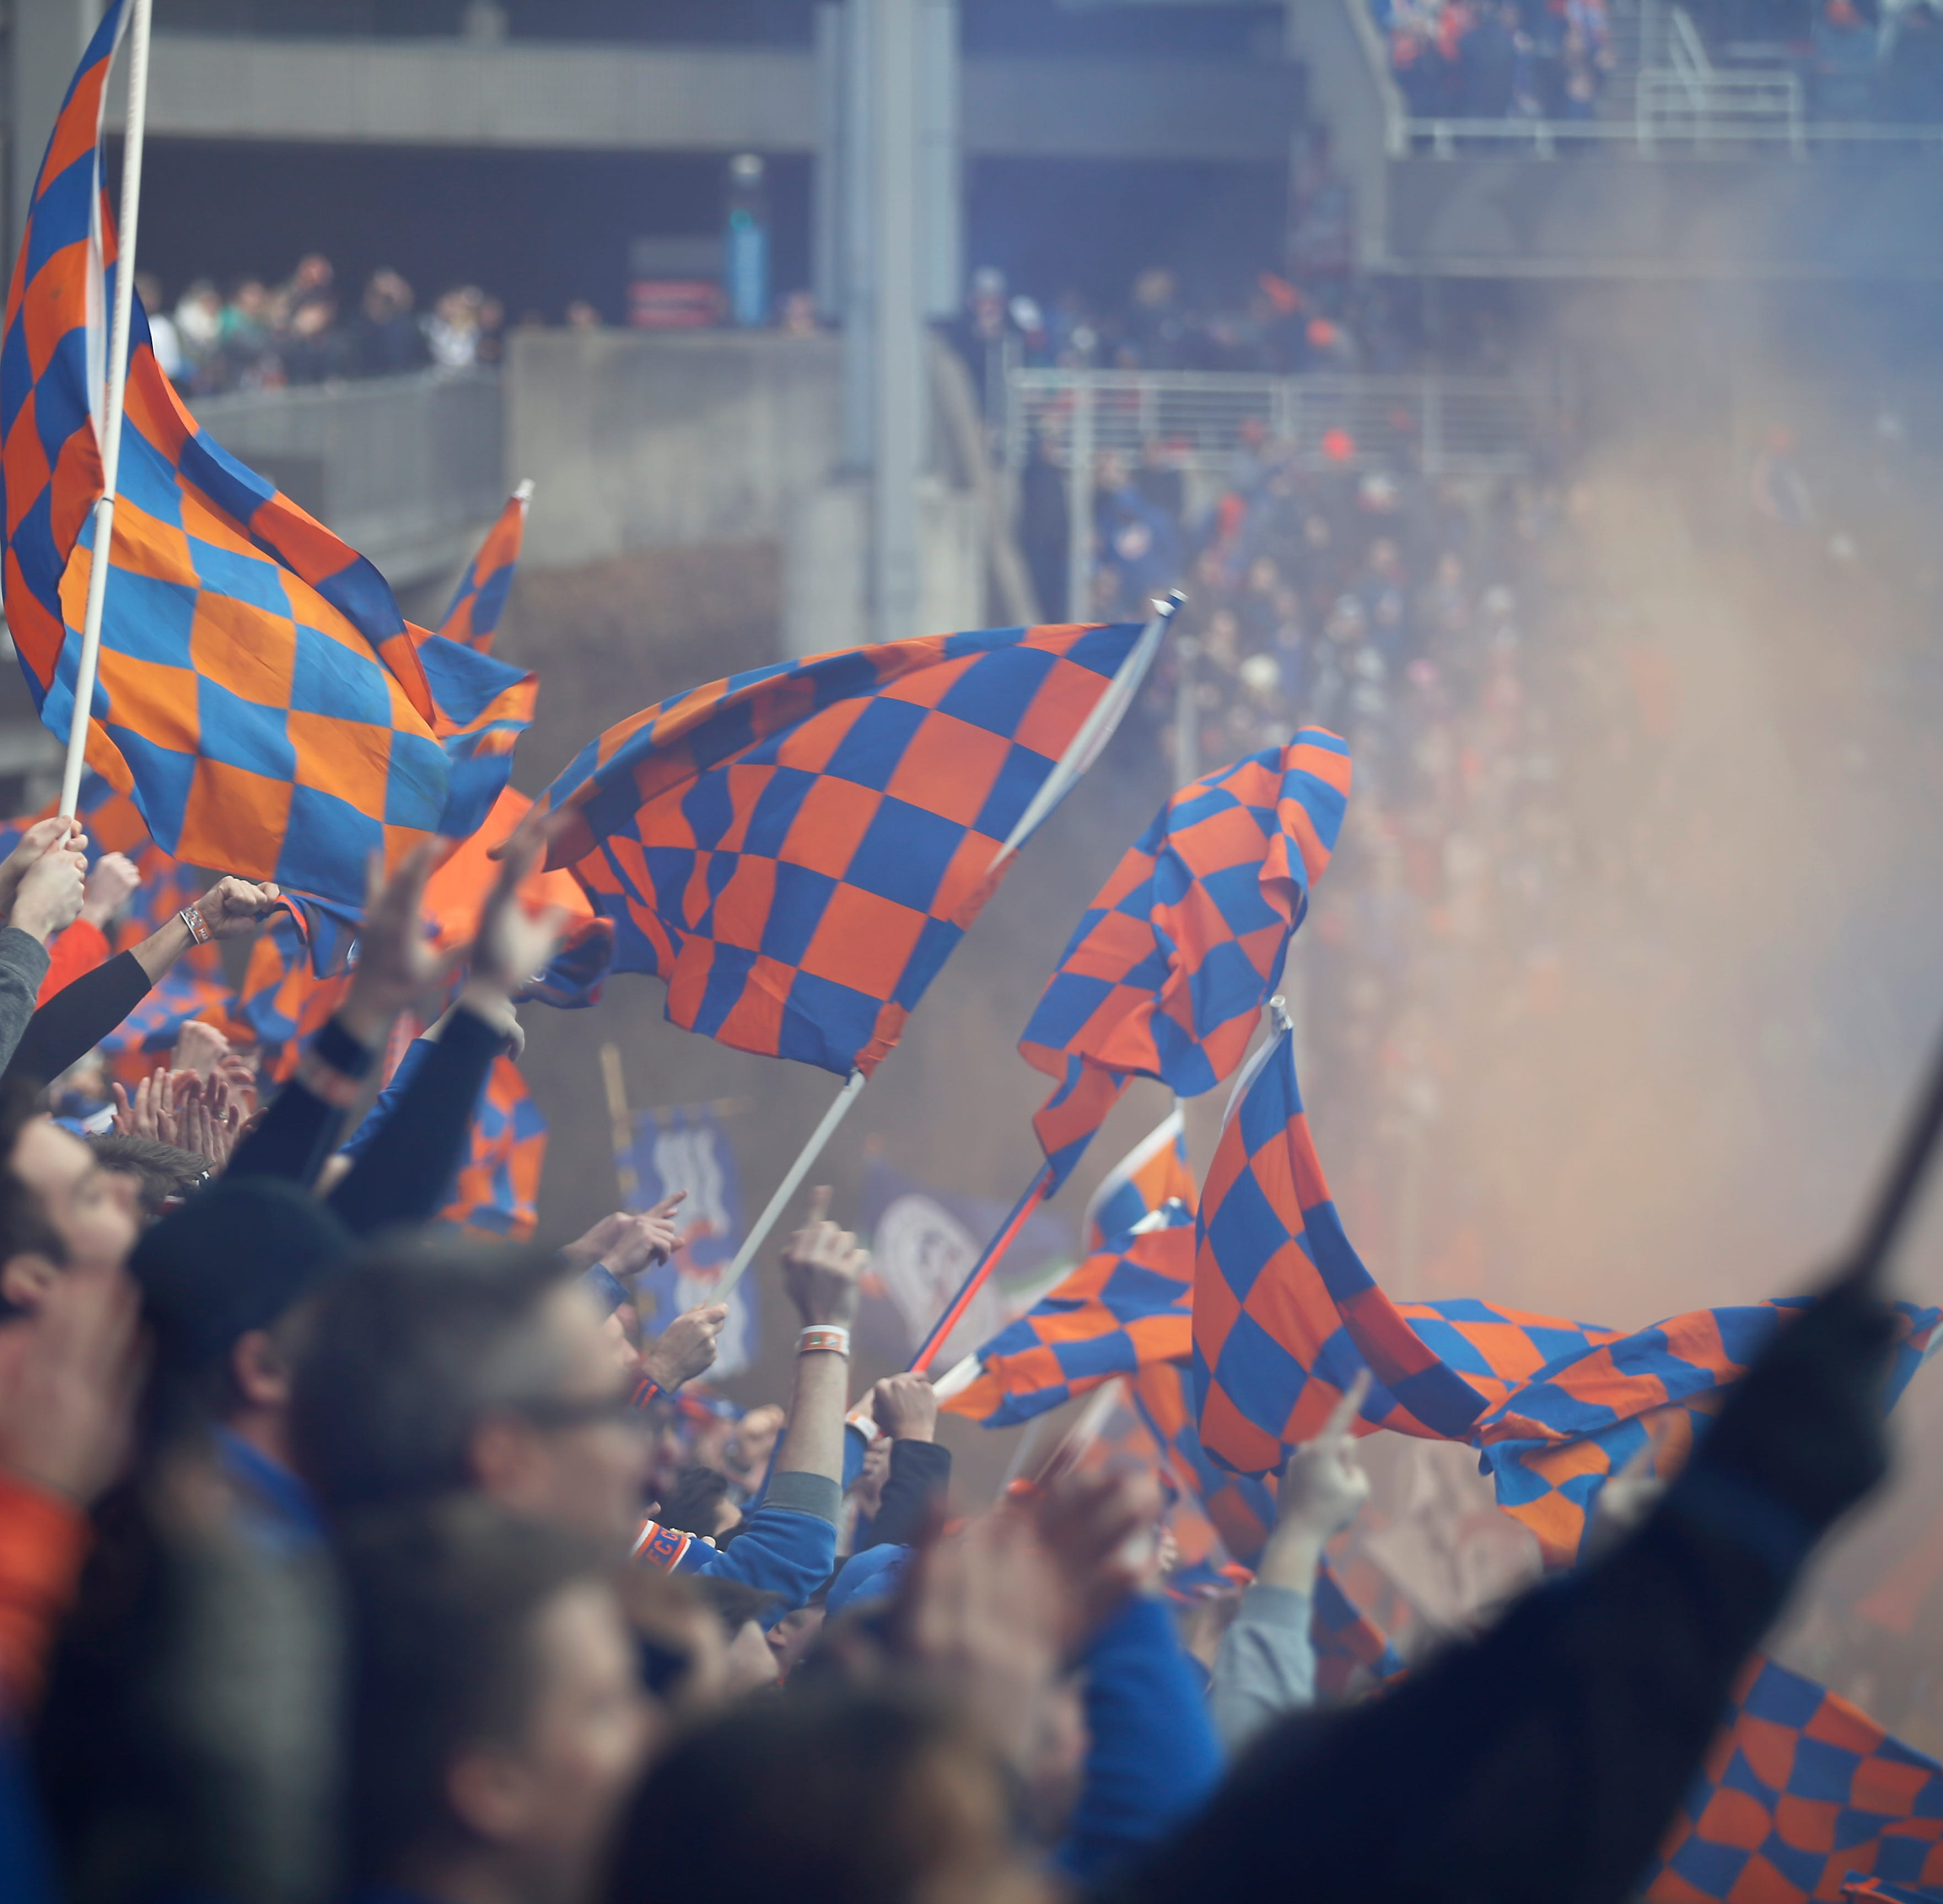 Scouting report: FC Cincinnati hosts Philadelphia Union in MLS match with rain in forecast